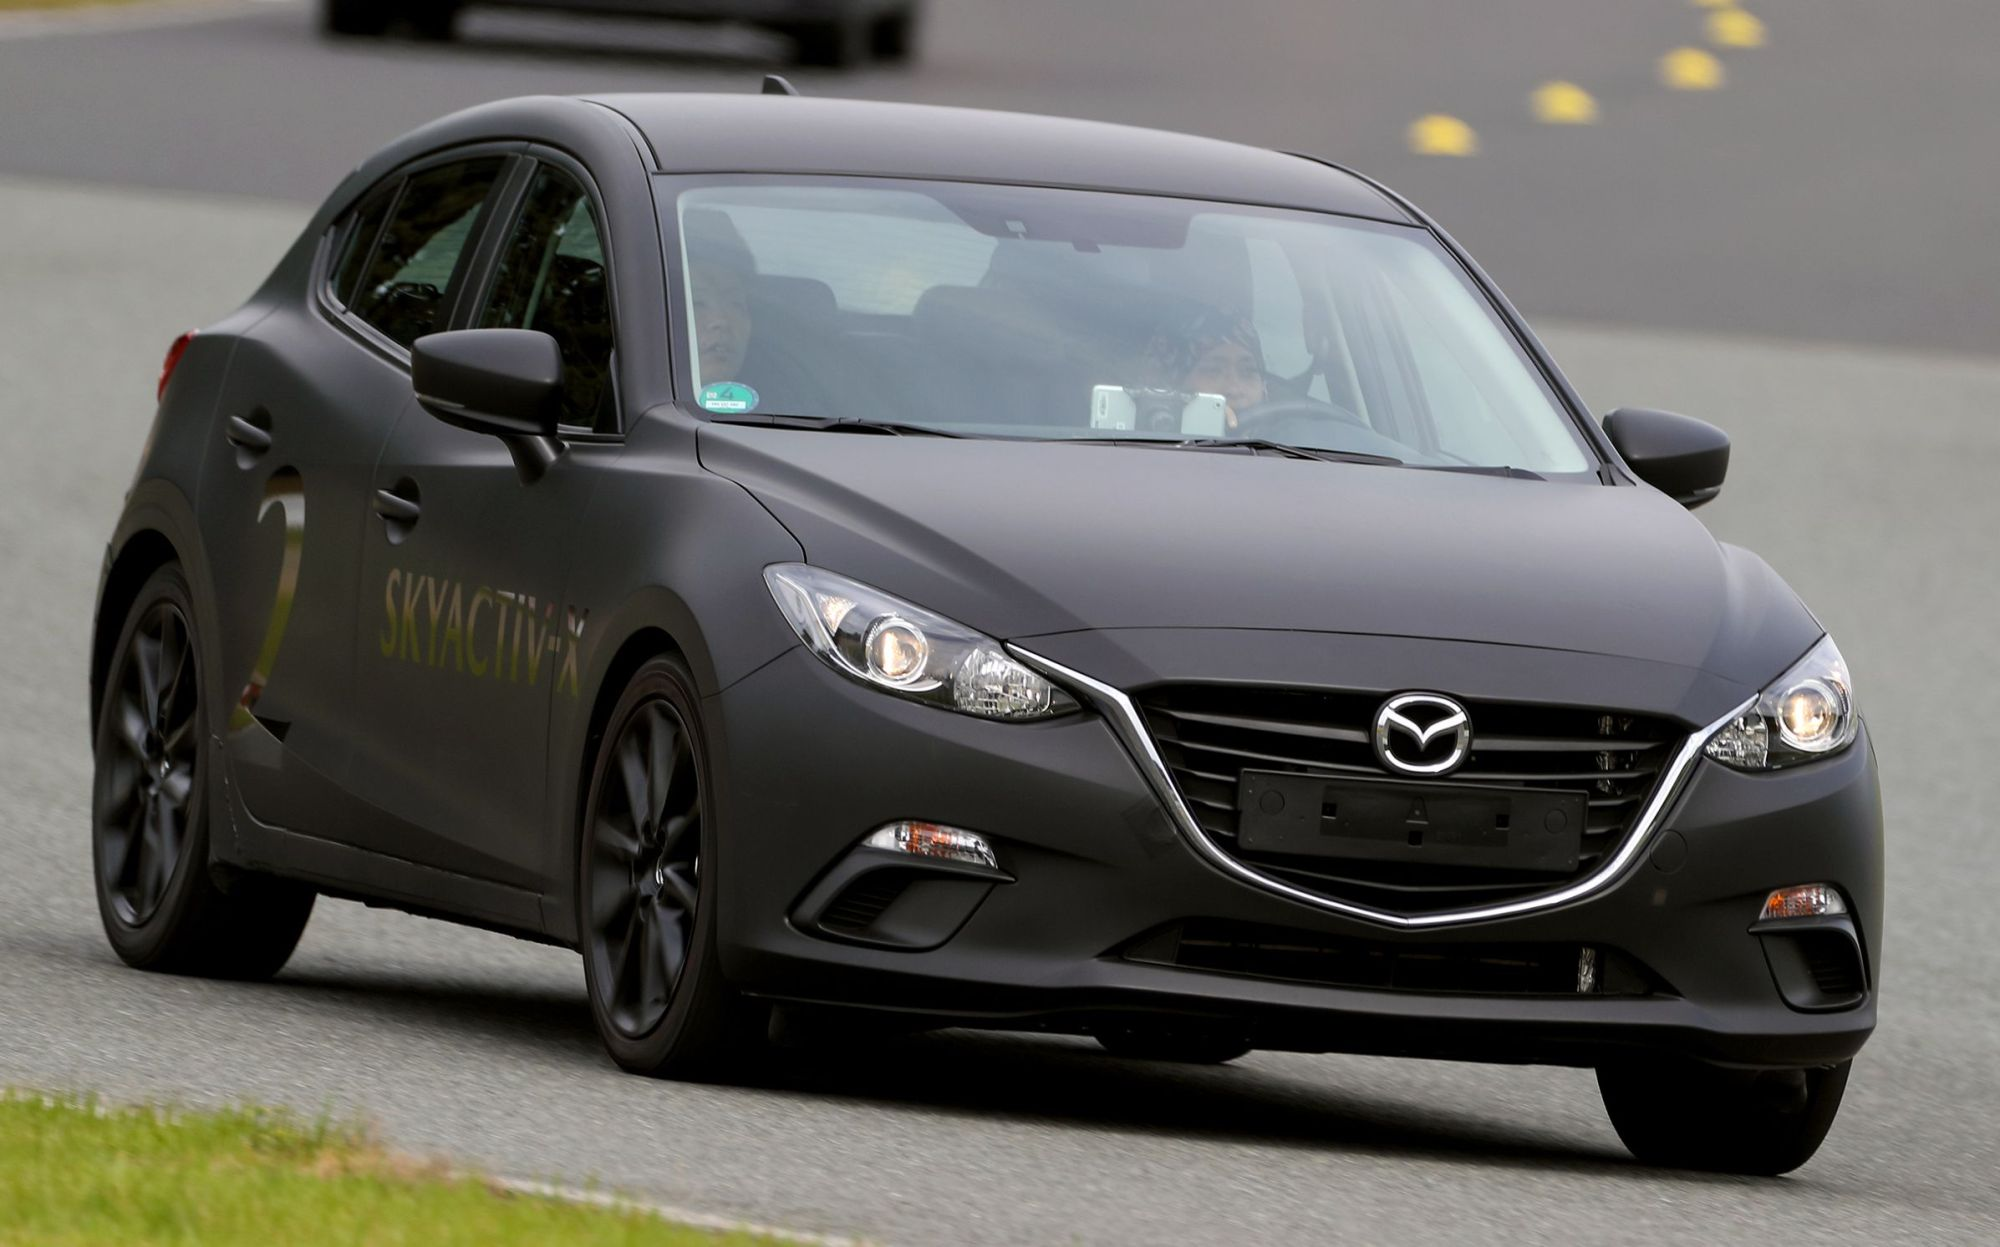 hight resolution of with the manual transmission the loud roar of the skyactiv x unit even at speeds of between 30 to 40 km h was almost urging this writer to shift to a